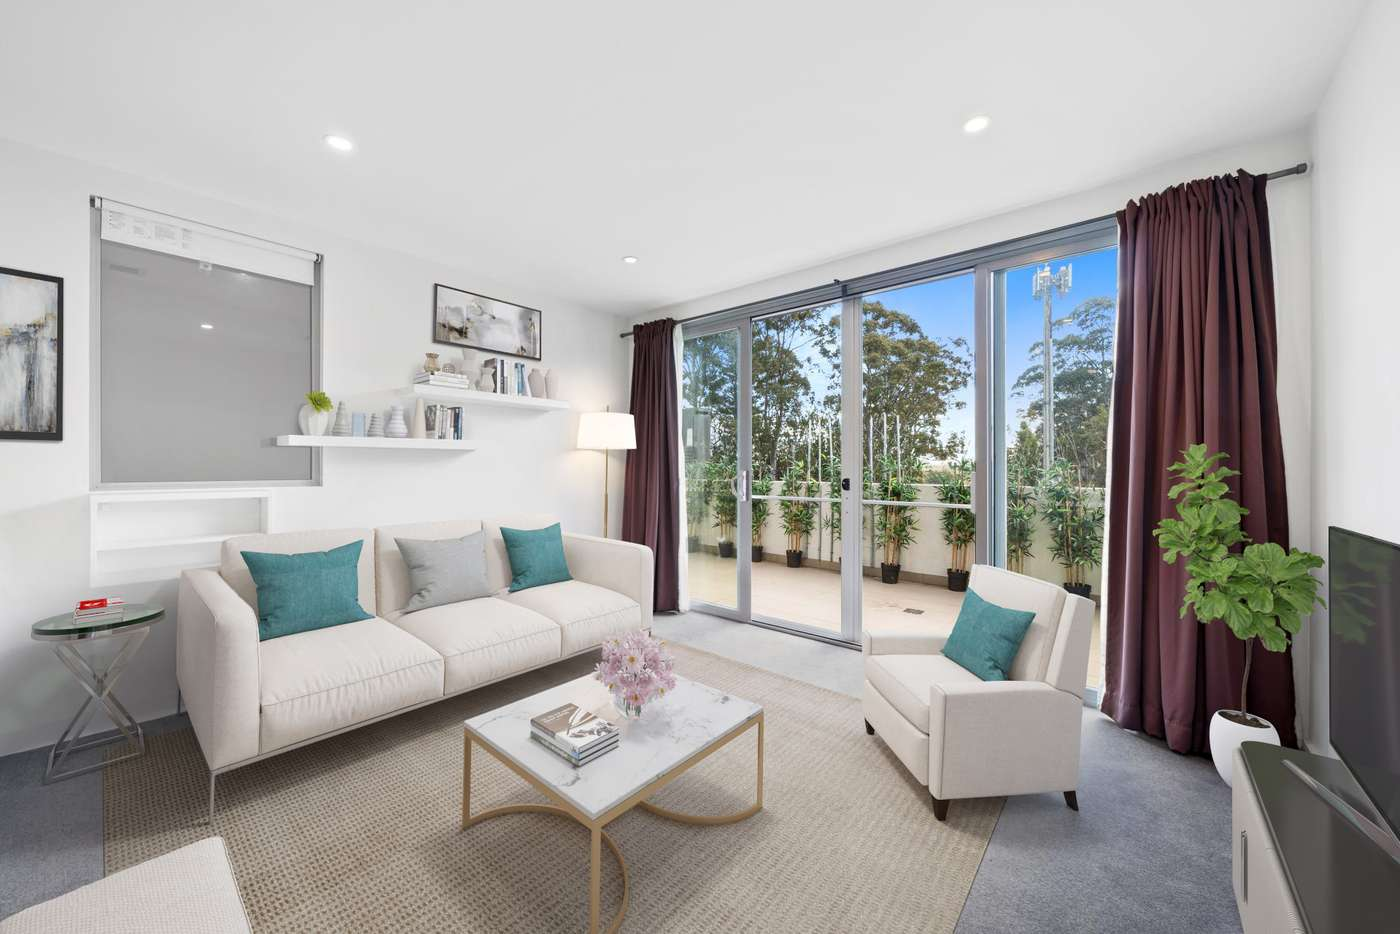 Fifth view of Homely apartment listing, 1201/169-177 Mona Vale Road, St Ives NSW 2075